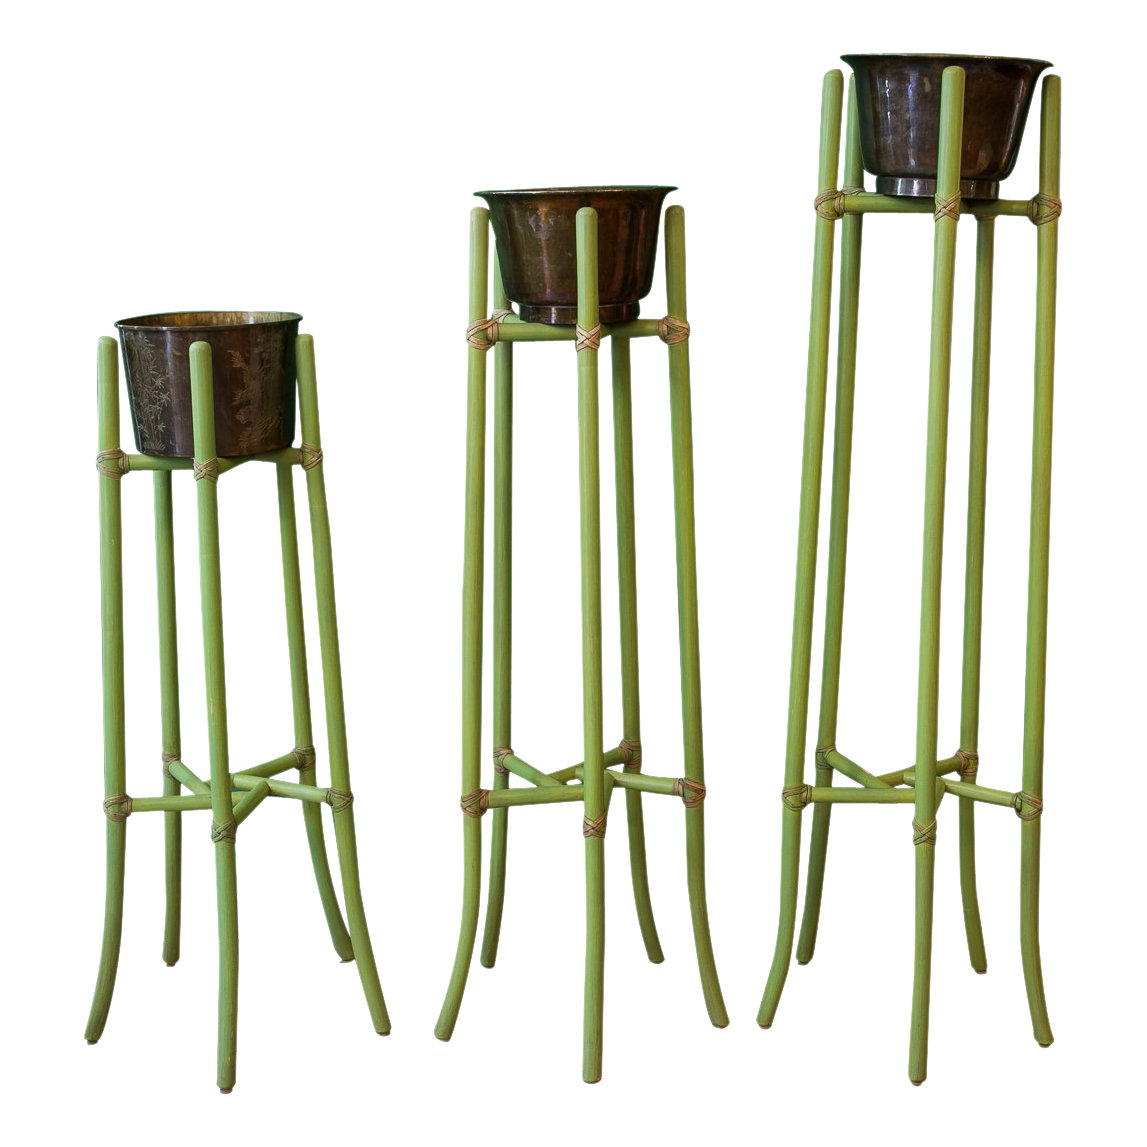 Tall Plant Stands Tall Plant Stands Ajarin Cascading